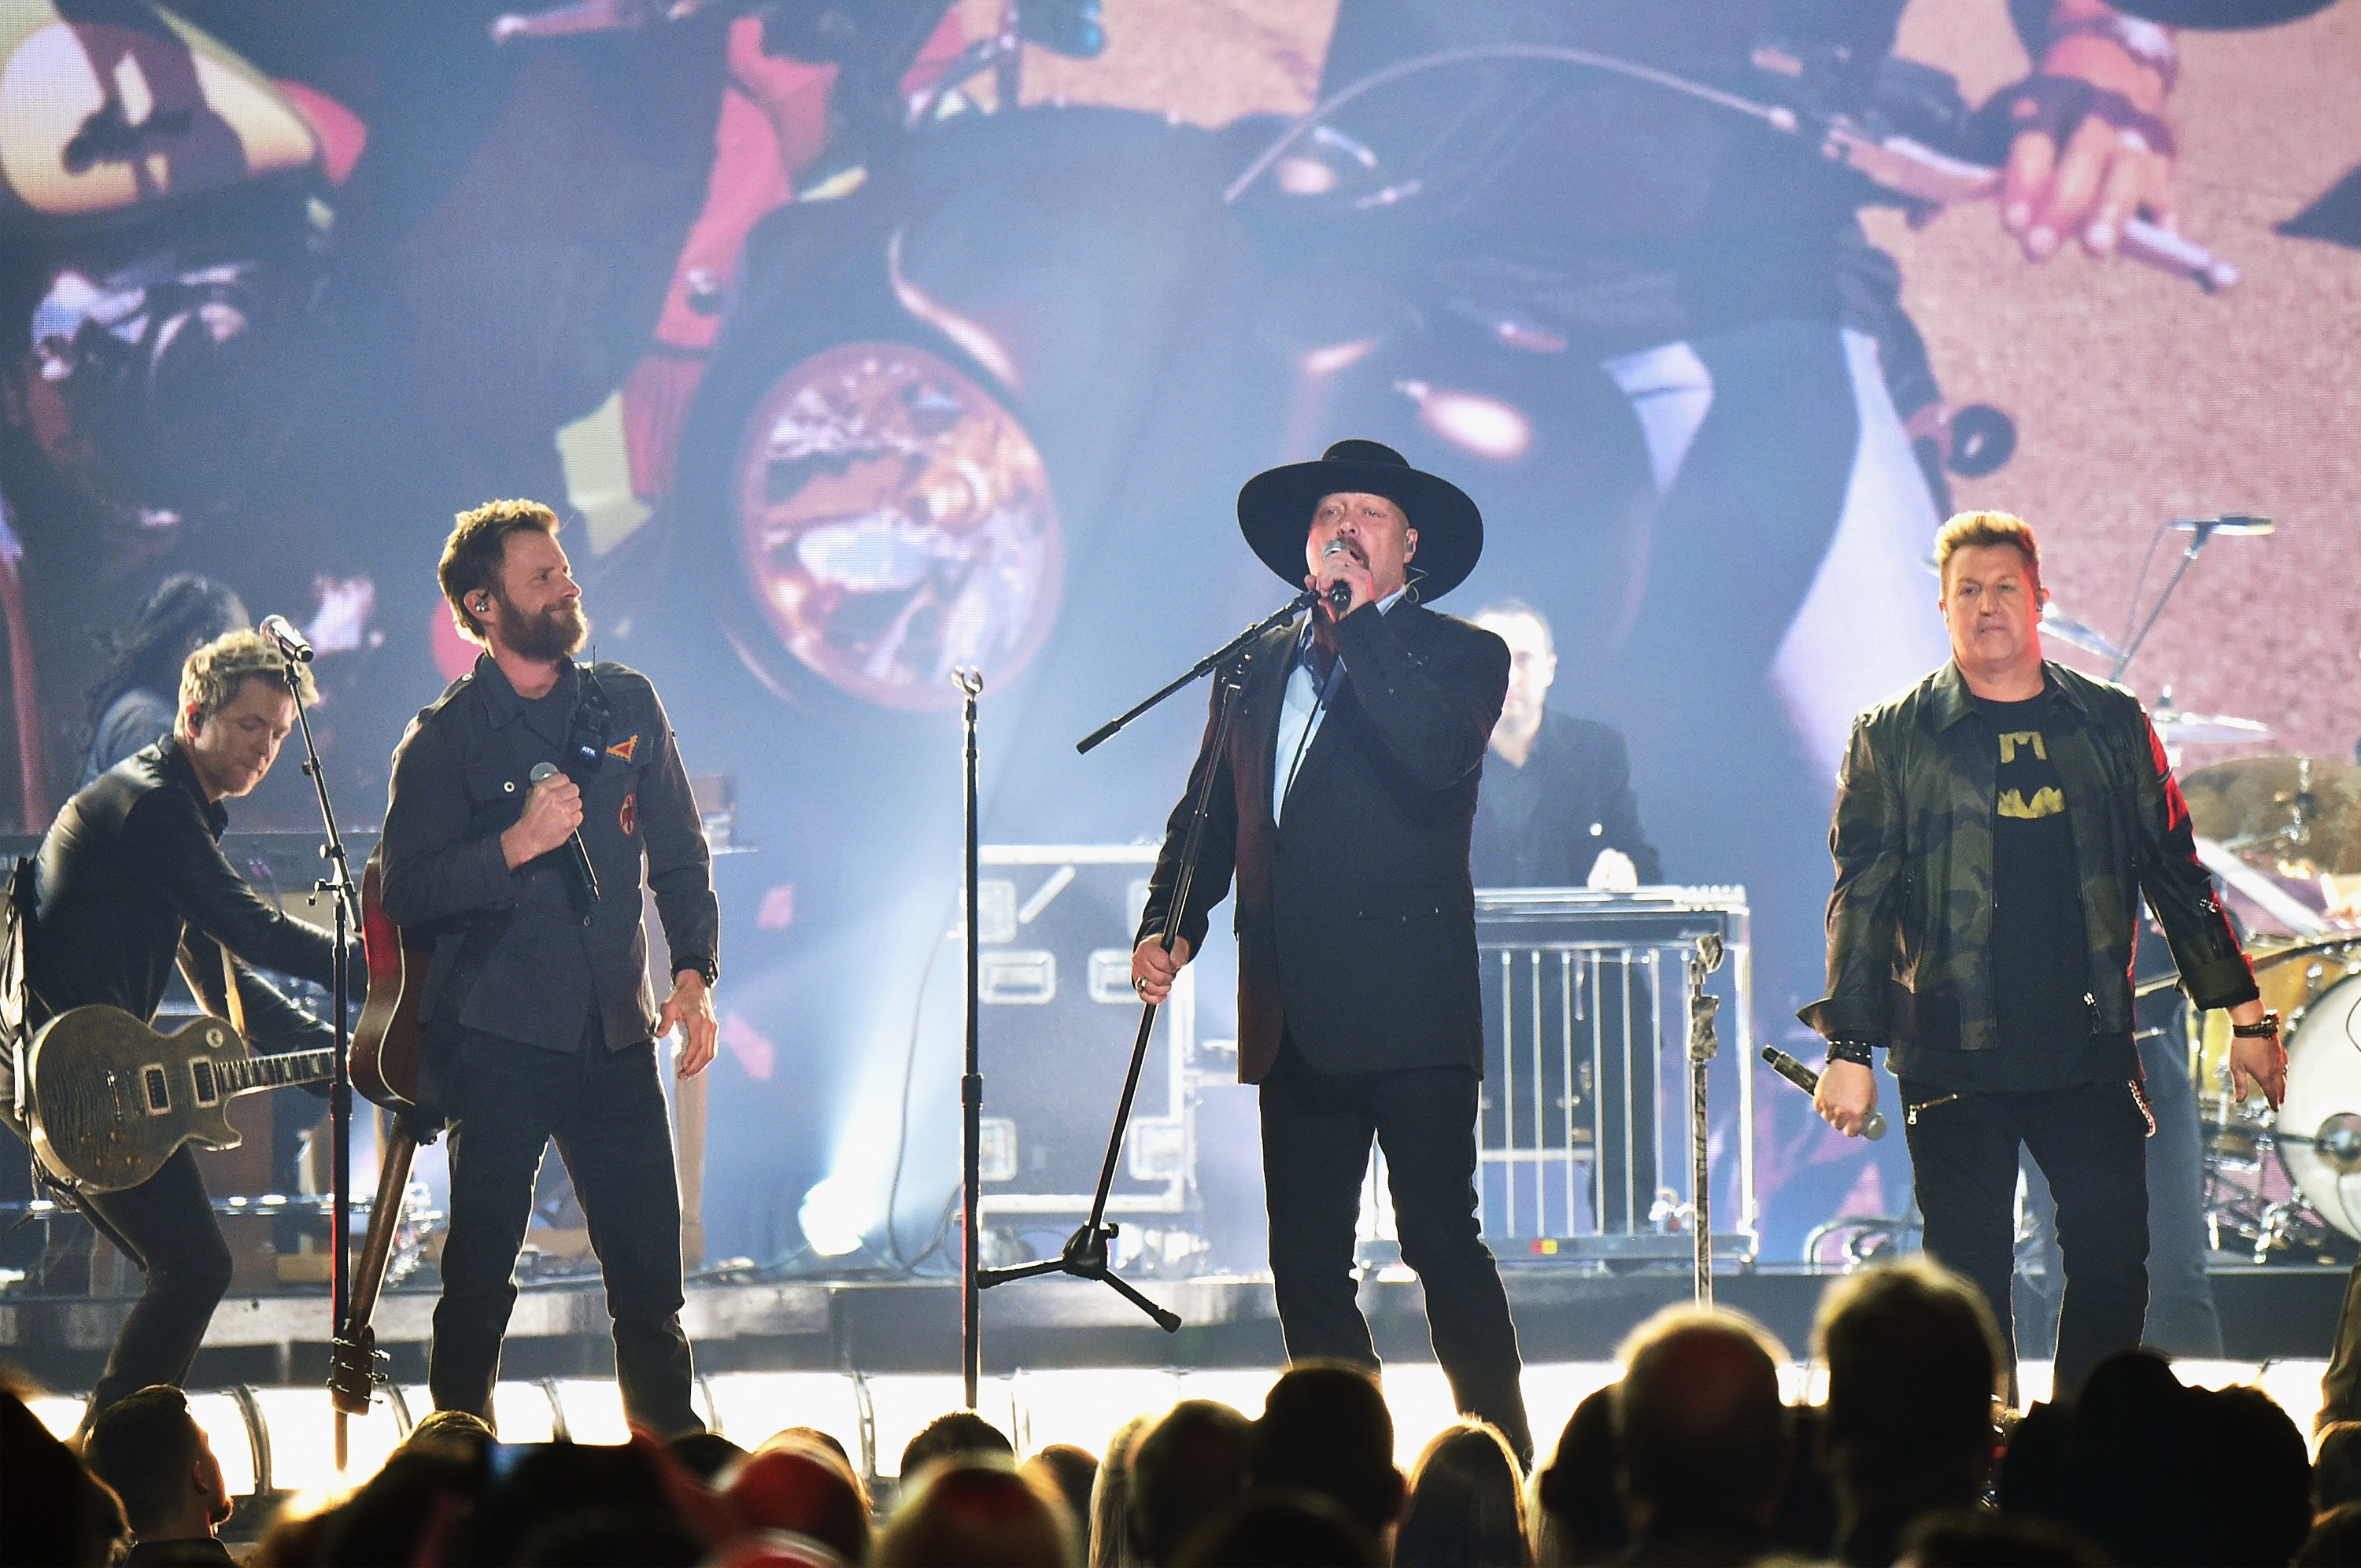 Montgomery Gentry Set Release Date for Final Album